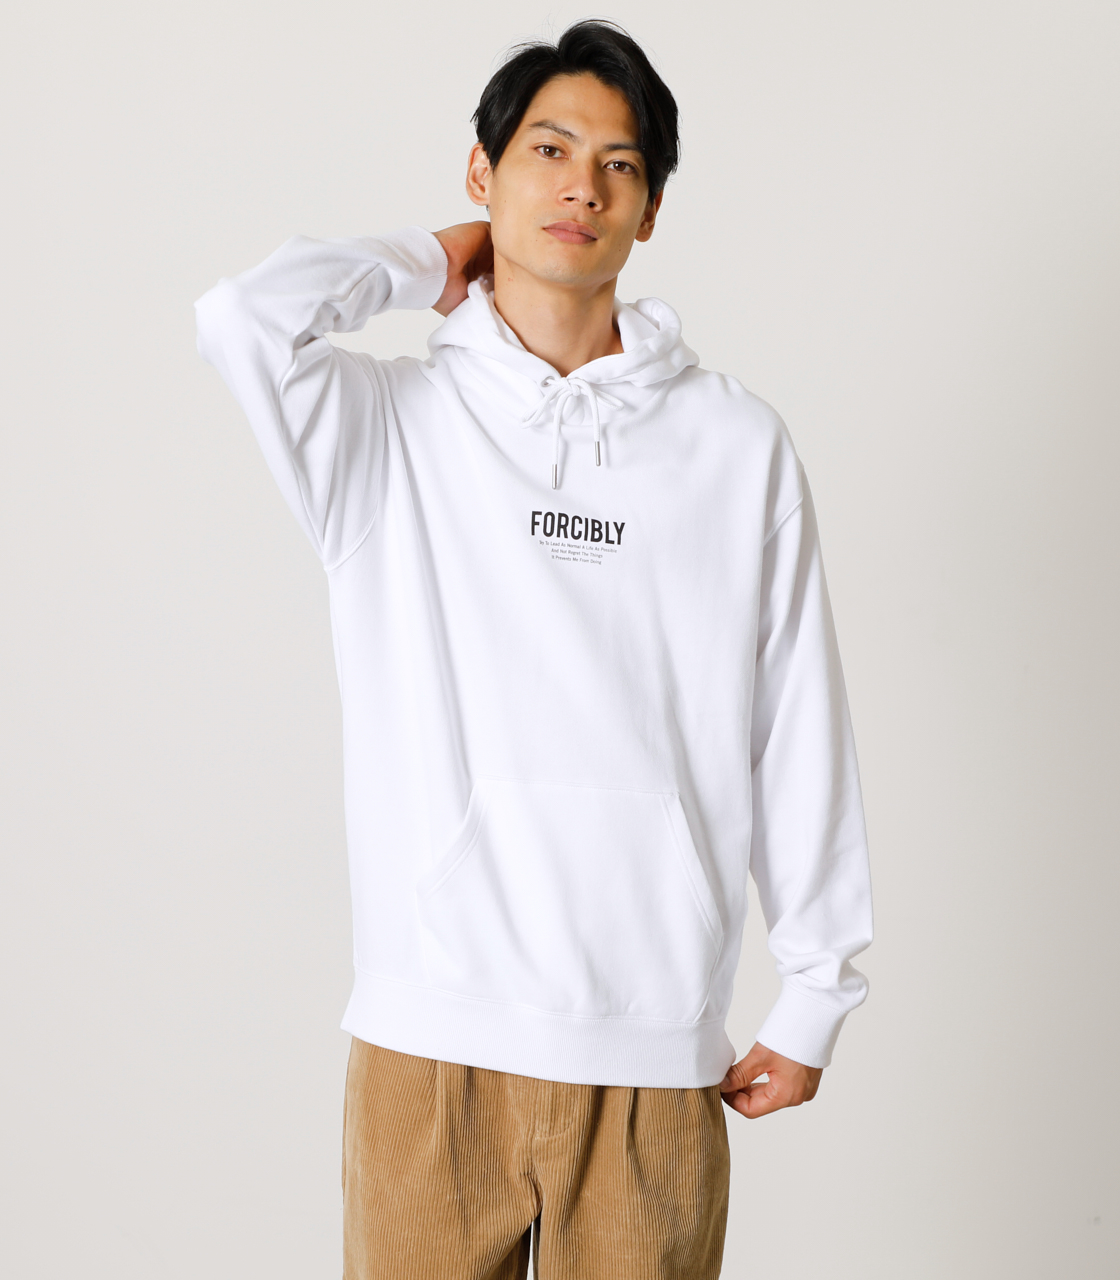 FORCIBLY HOODIE/フォーシブリーフーディ 詳細画像 WHT 1